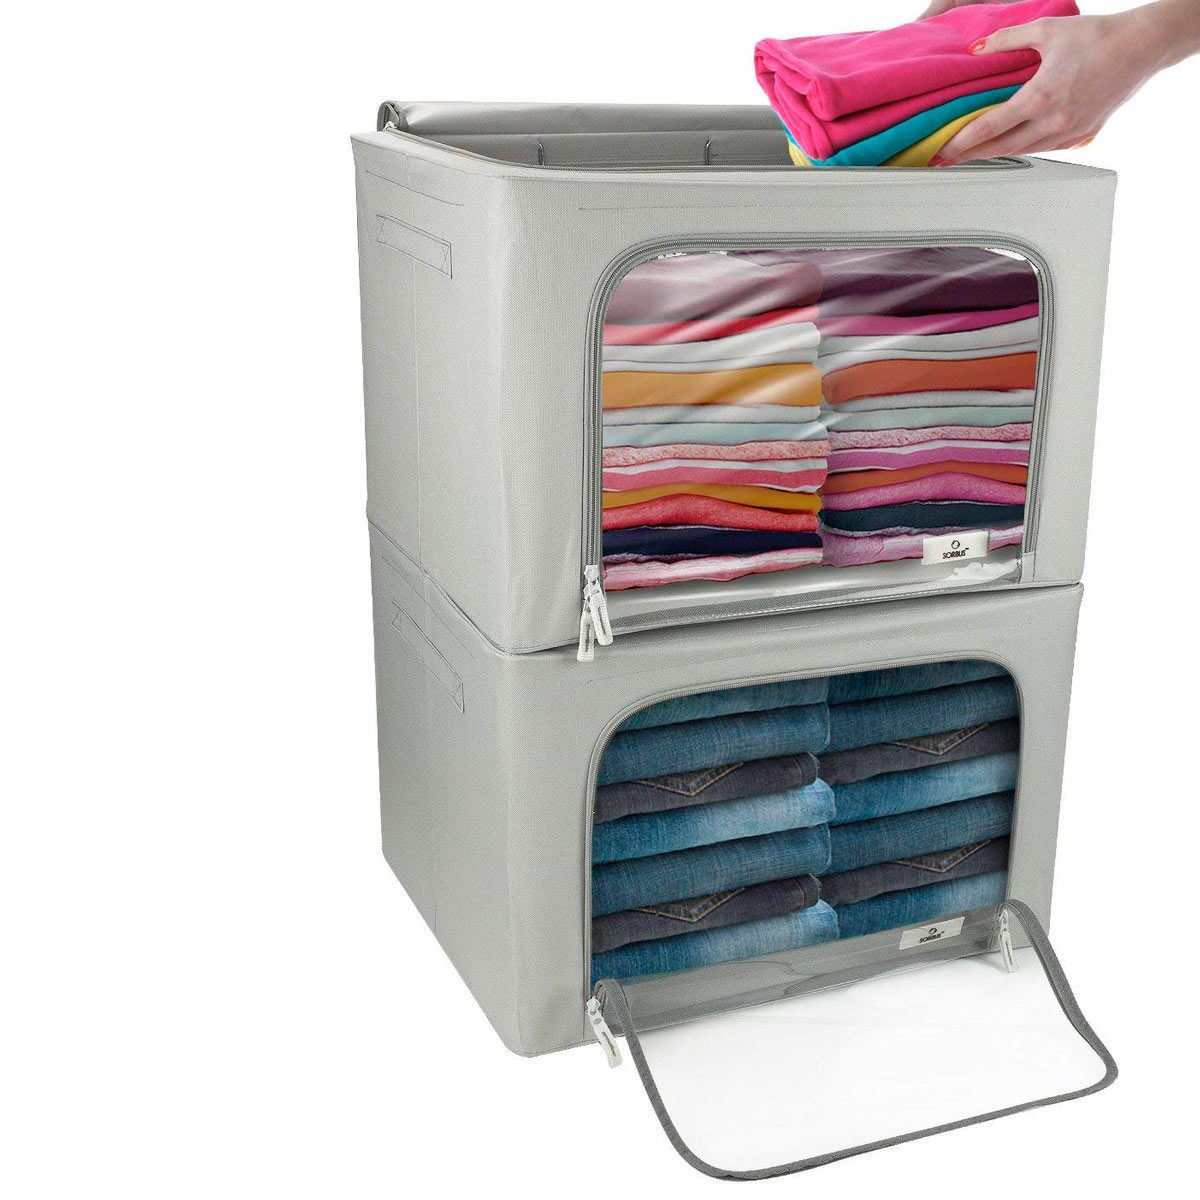 Save Space With These 10 Stackable Storage Bins